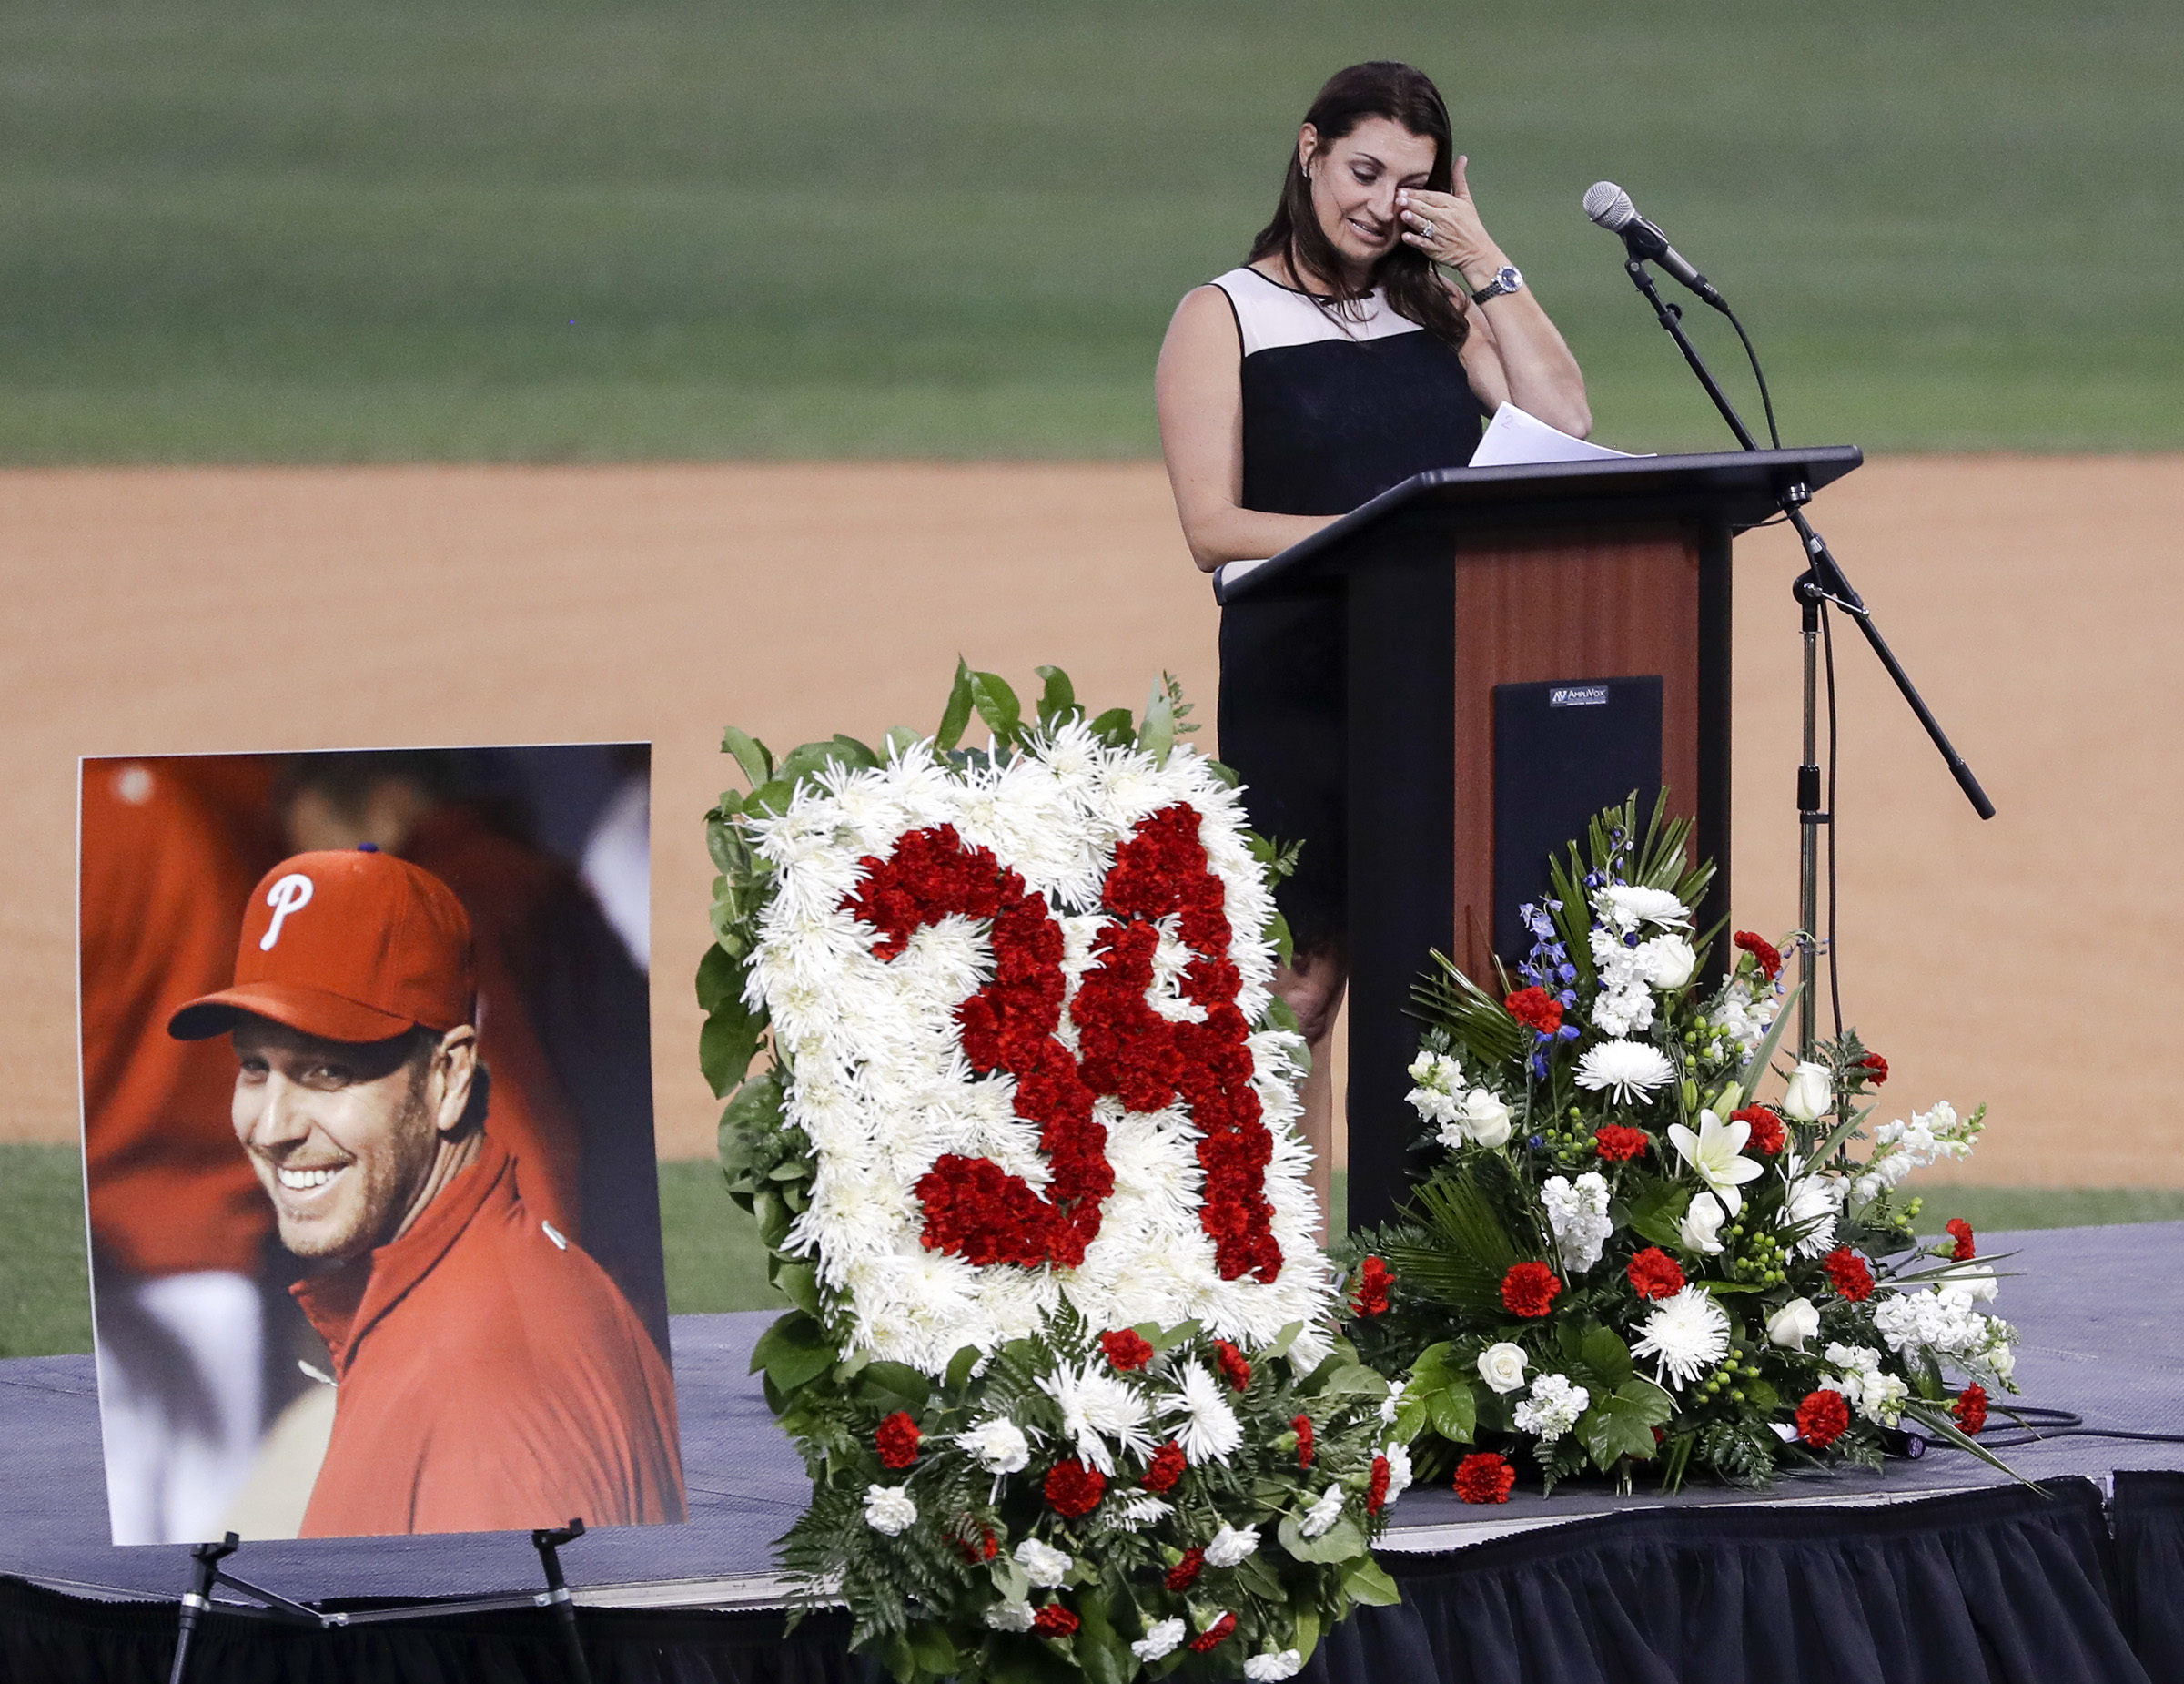 Brandy Halladay, wife of late MLB pitcher Roy Halladay, wipes her eyes while talking about her husband during a Celebration of Life for Roy Halladay at Spectrum Field in Clearwater, Fla., on Tuesday, Nov. 14, 2017. (Yong Kim/Philadelphia Inquirer/TNS)